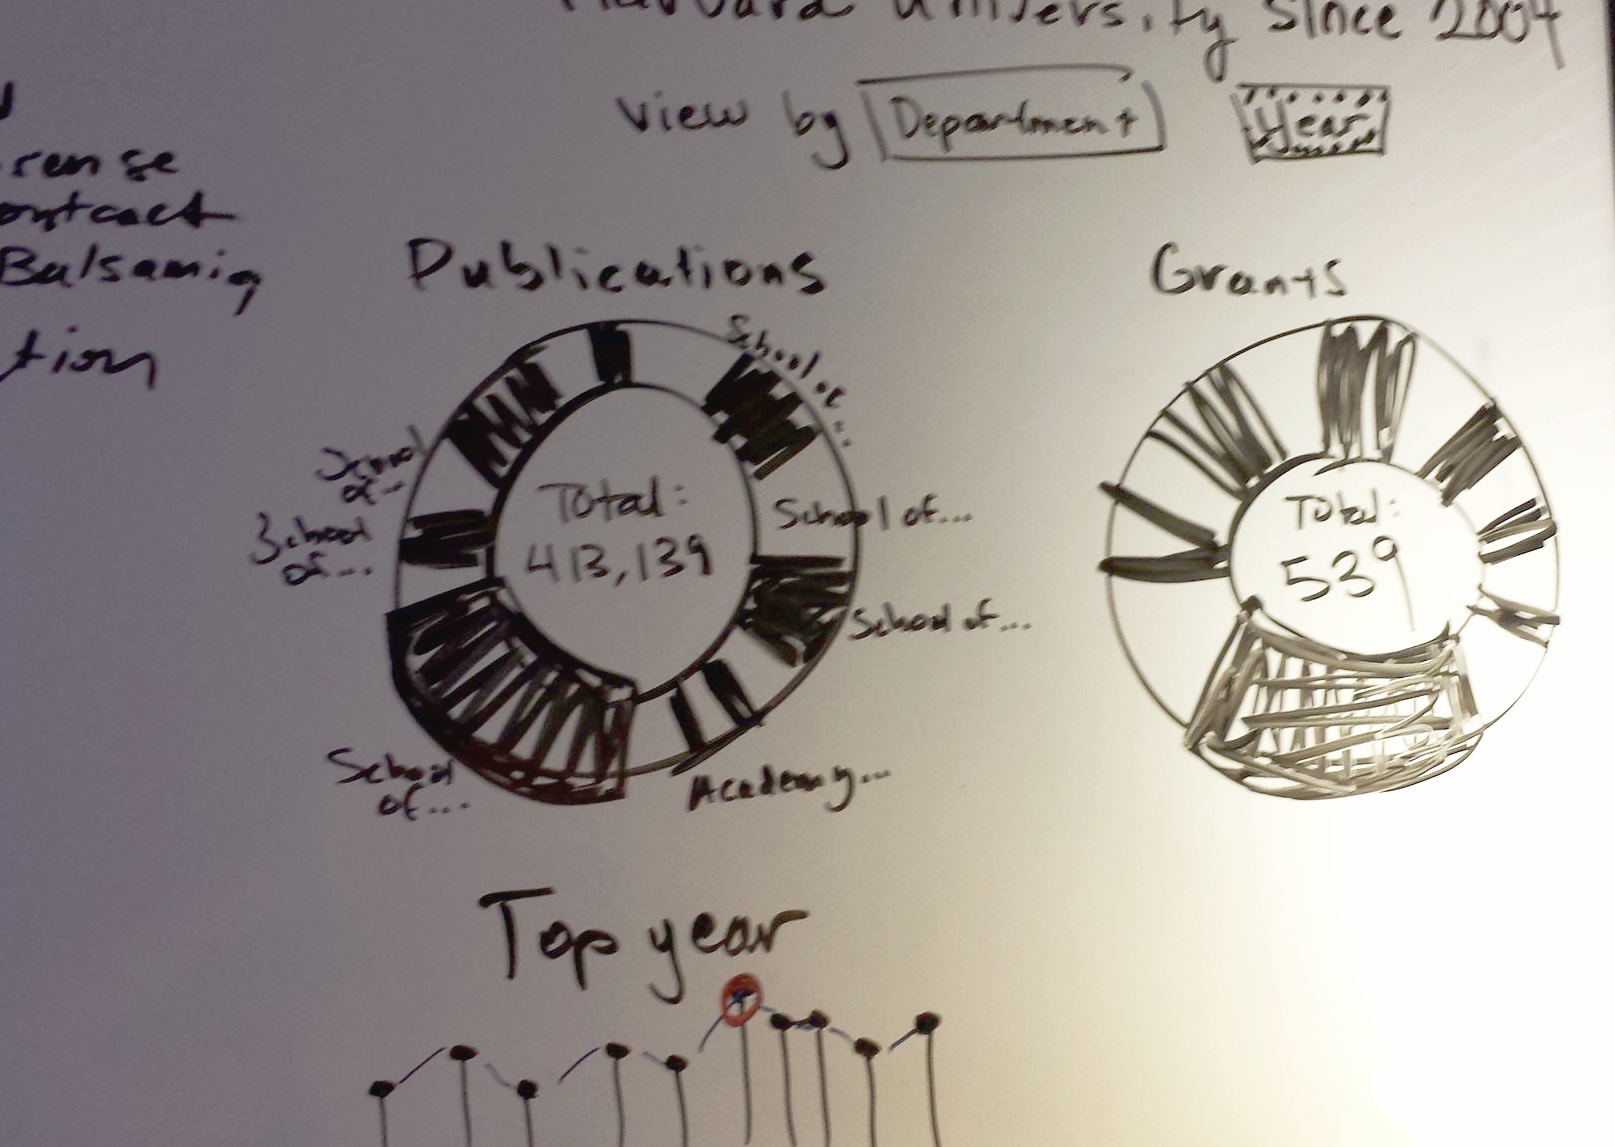 This is an example of data visualization sketches I worked on.